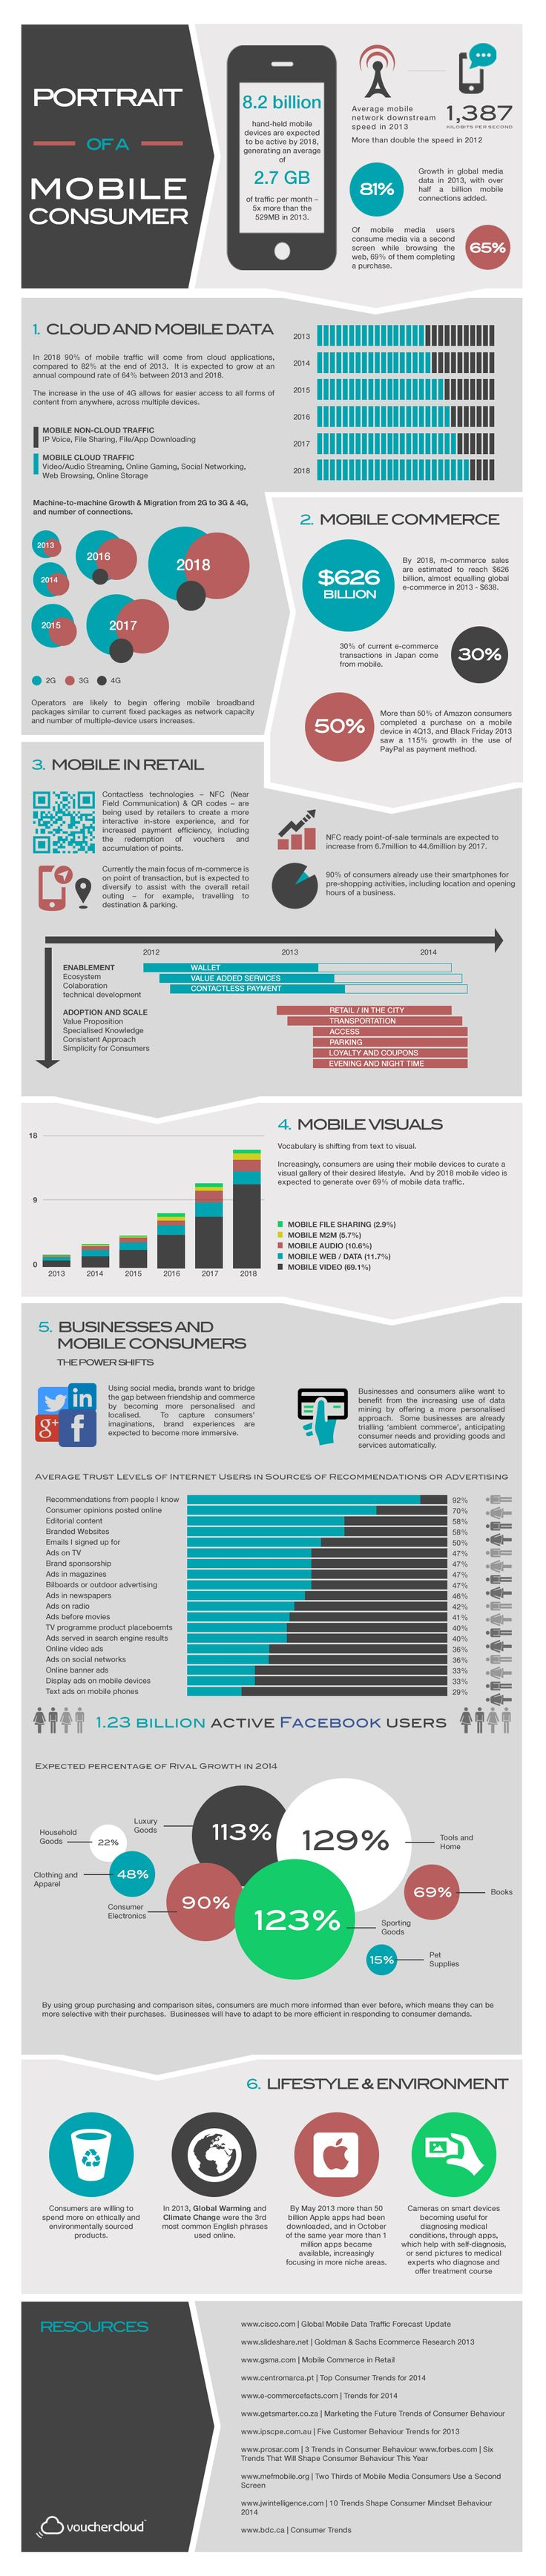 Portrait of a Mobile Consumer | Digital Marketing Magazine